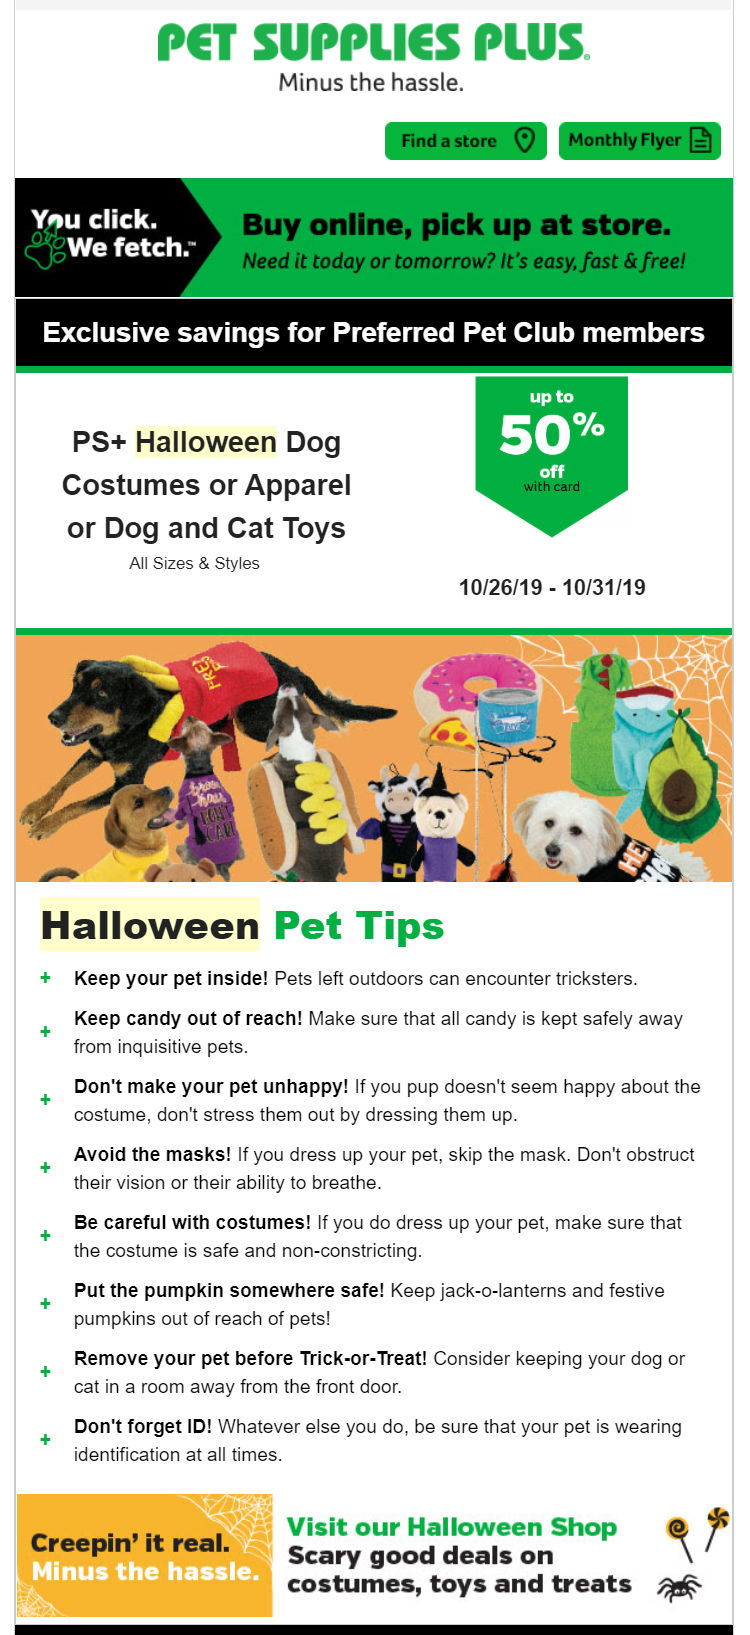 Pet Supplies Plus email campaign